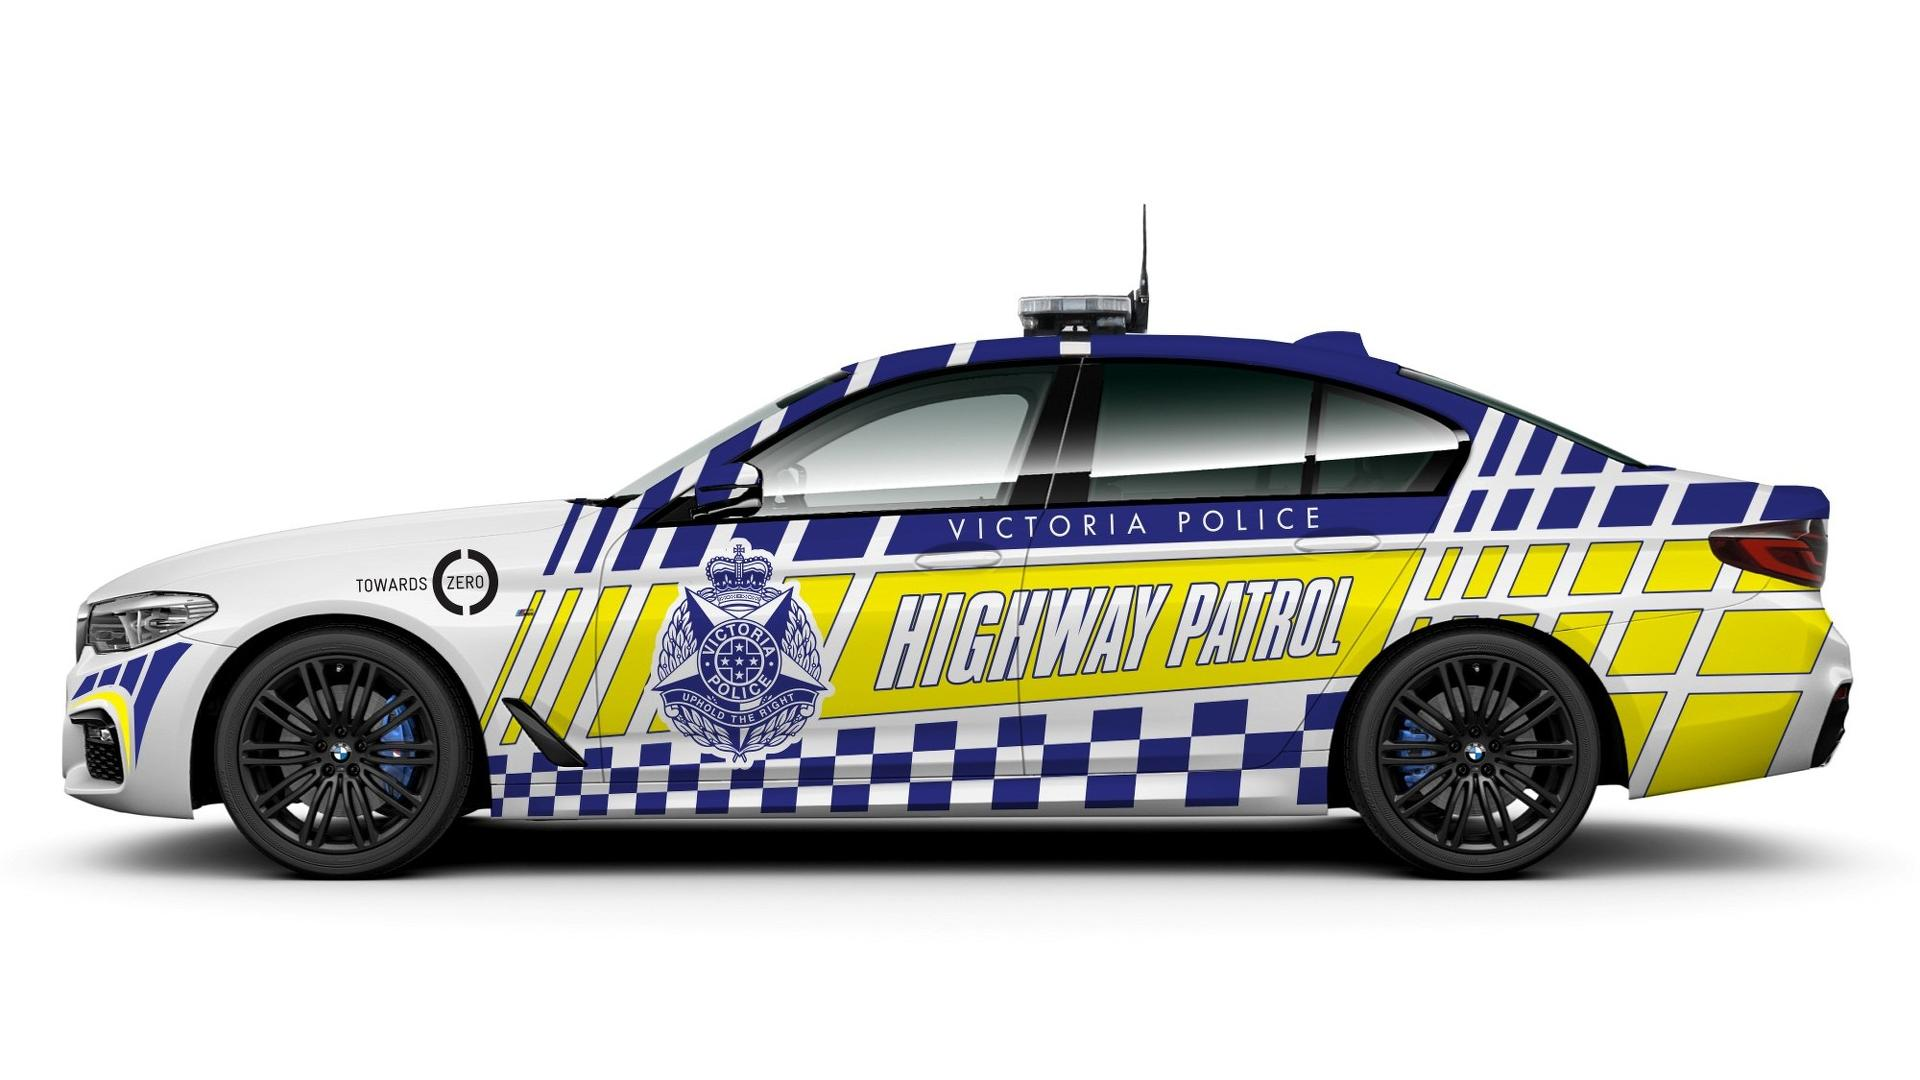 Toyota Camry Hd Wallpapers 2017 Bmw 530d Police Cars Yes In Victoria Australia